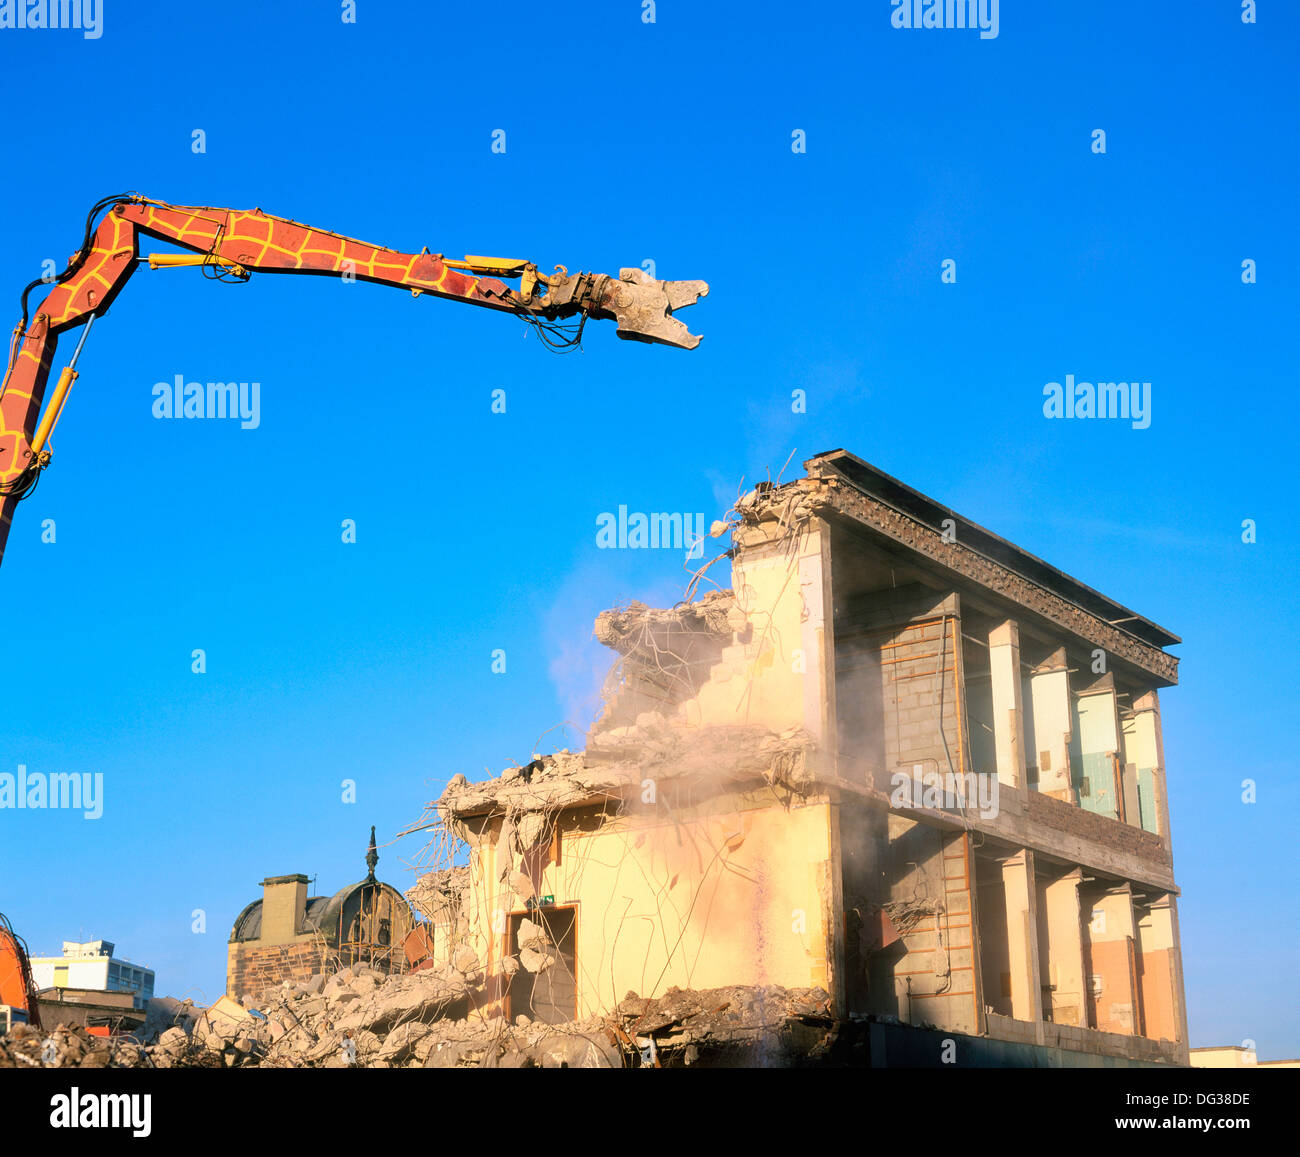 Shopping complex being demolished - Stock Image